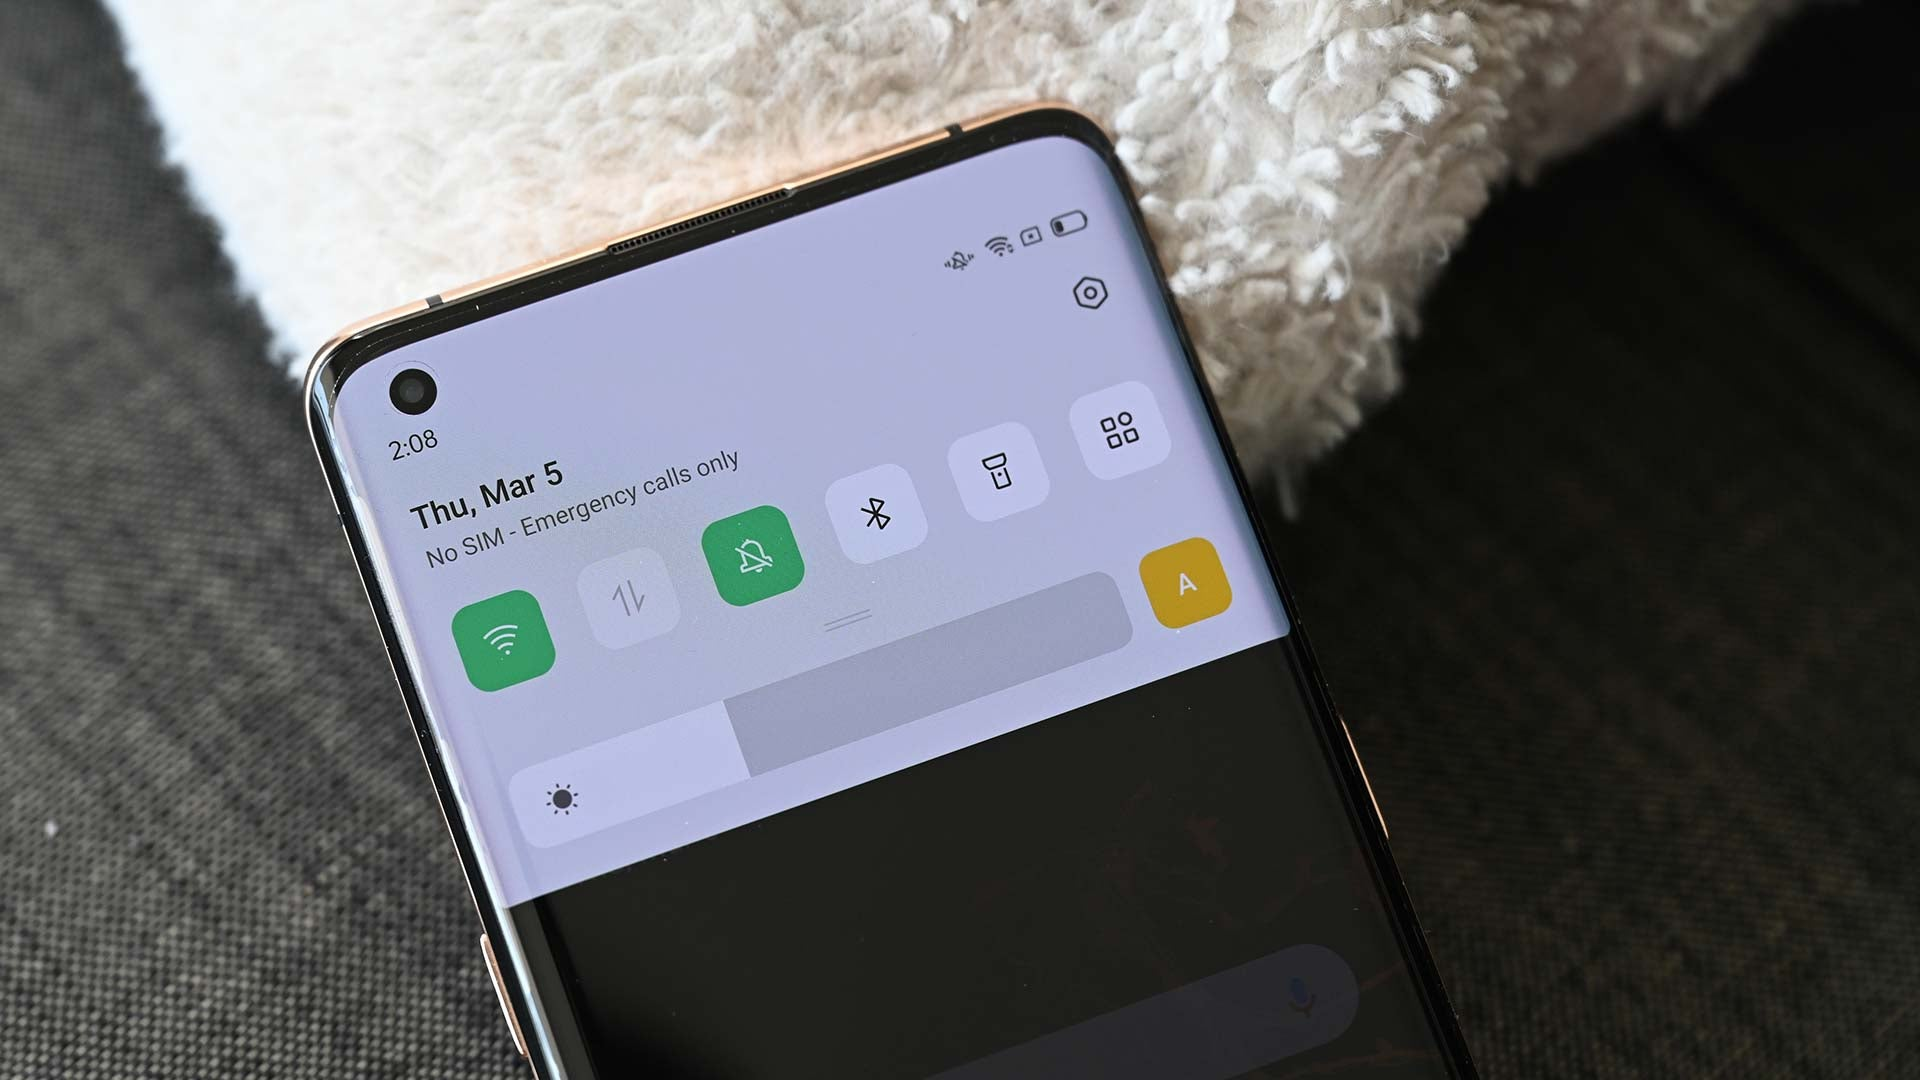 Oppo Find X2 First Look: A New Bar For Refresh Rates On Phones 6